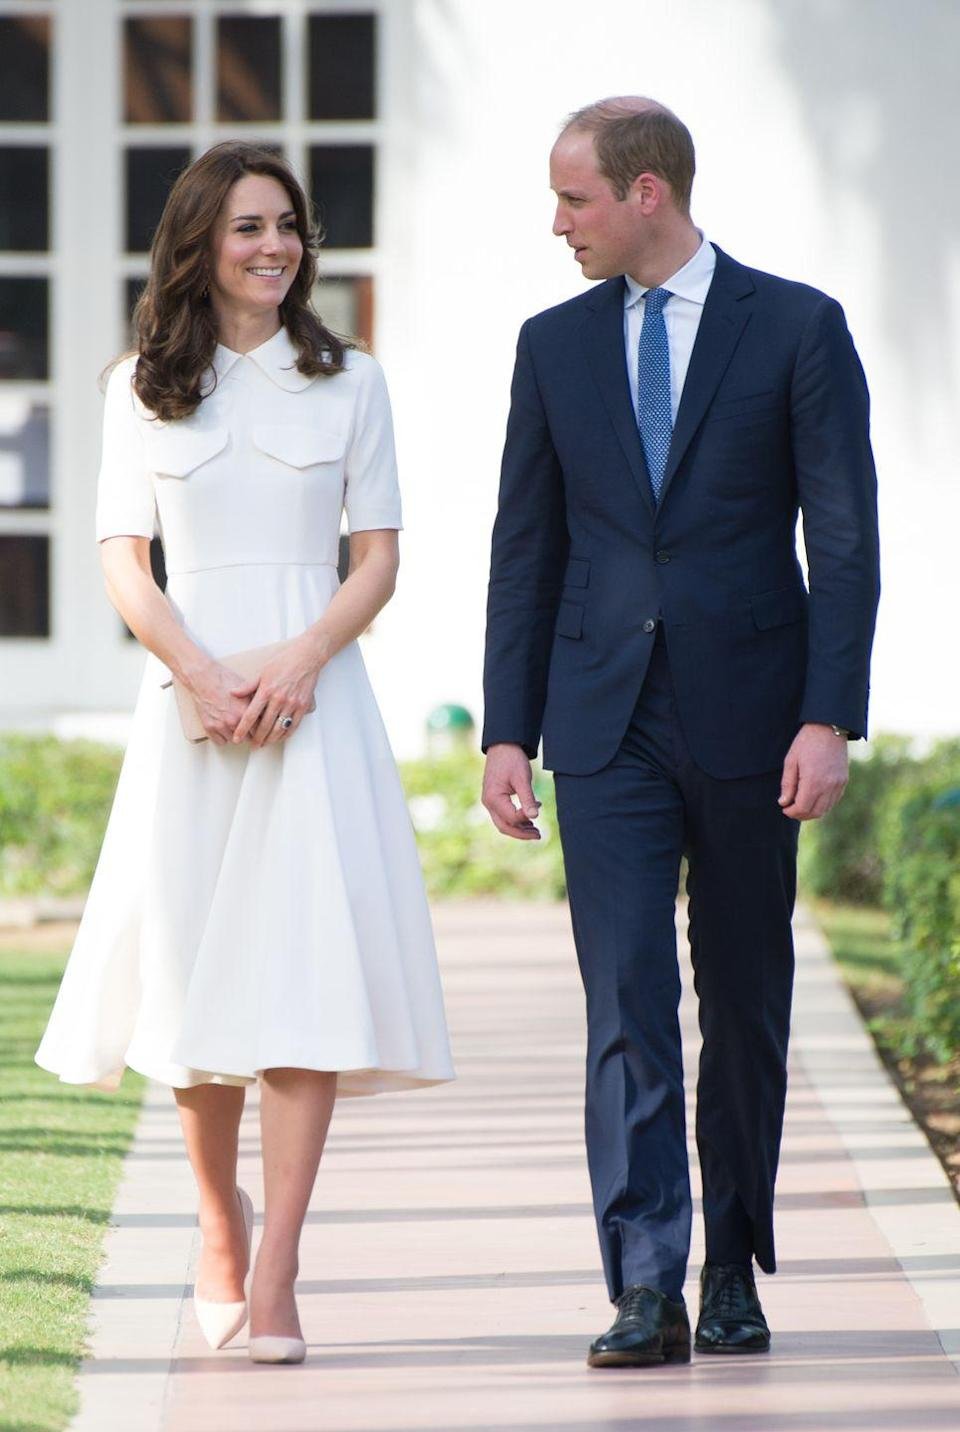 "<p>Kate wears a white button up A-line dress by <a href=""http://www.emiliawickstead.com/"" rel=""nofollow noopener"" target=""_blank"" data-ylk=""slk:Emilia Wickstead"" class=""link rapid-noclick-resp"">Emilia Wickstead</a> during a visit to the Mahatma Gandhi museum in New Delhi. </p>"